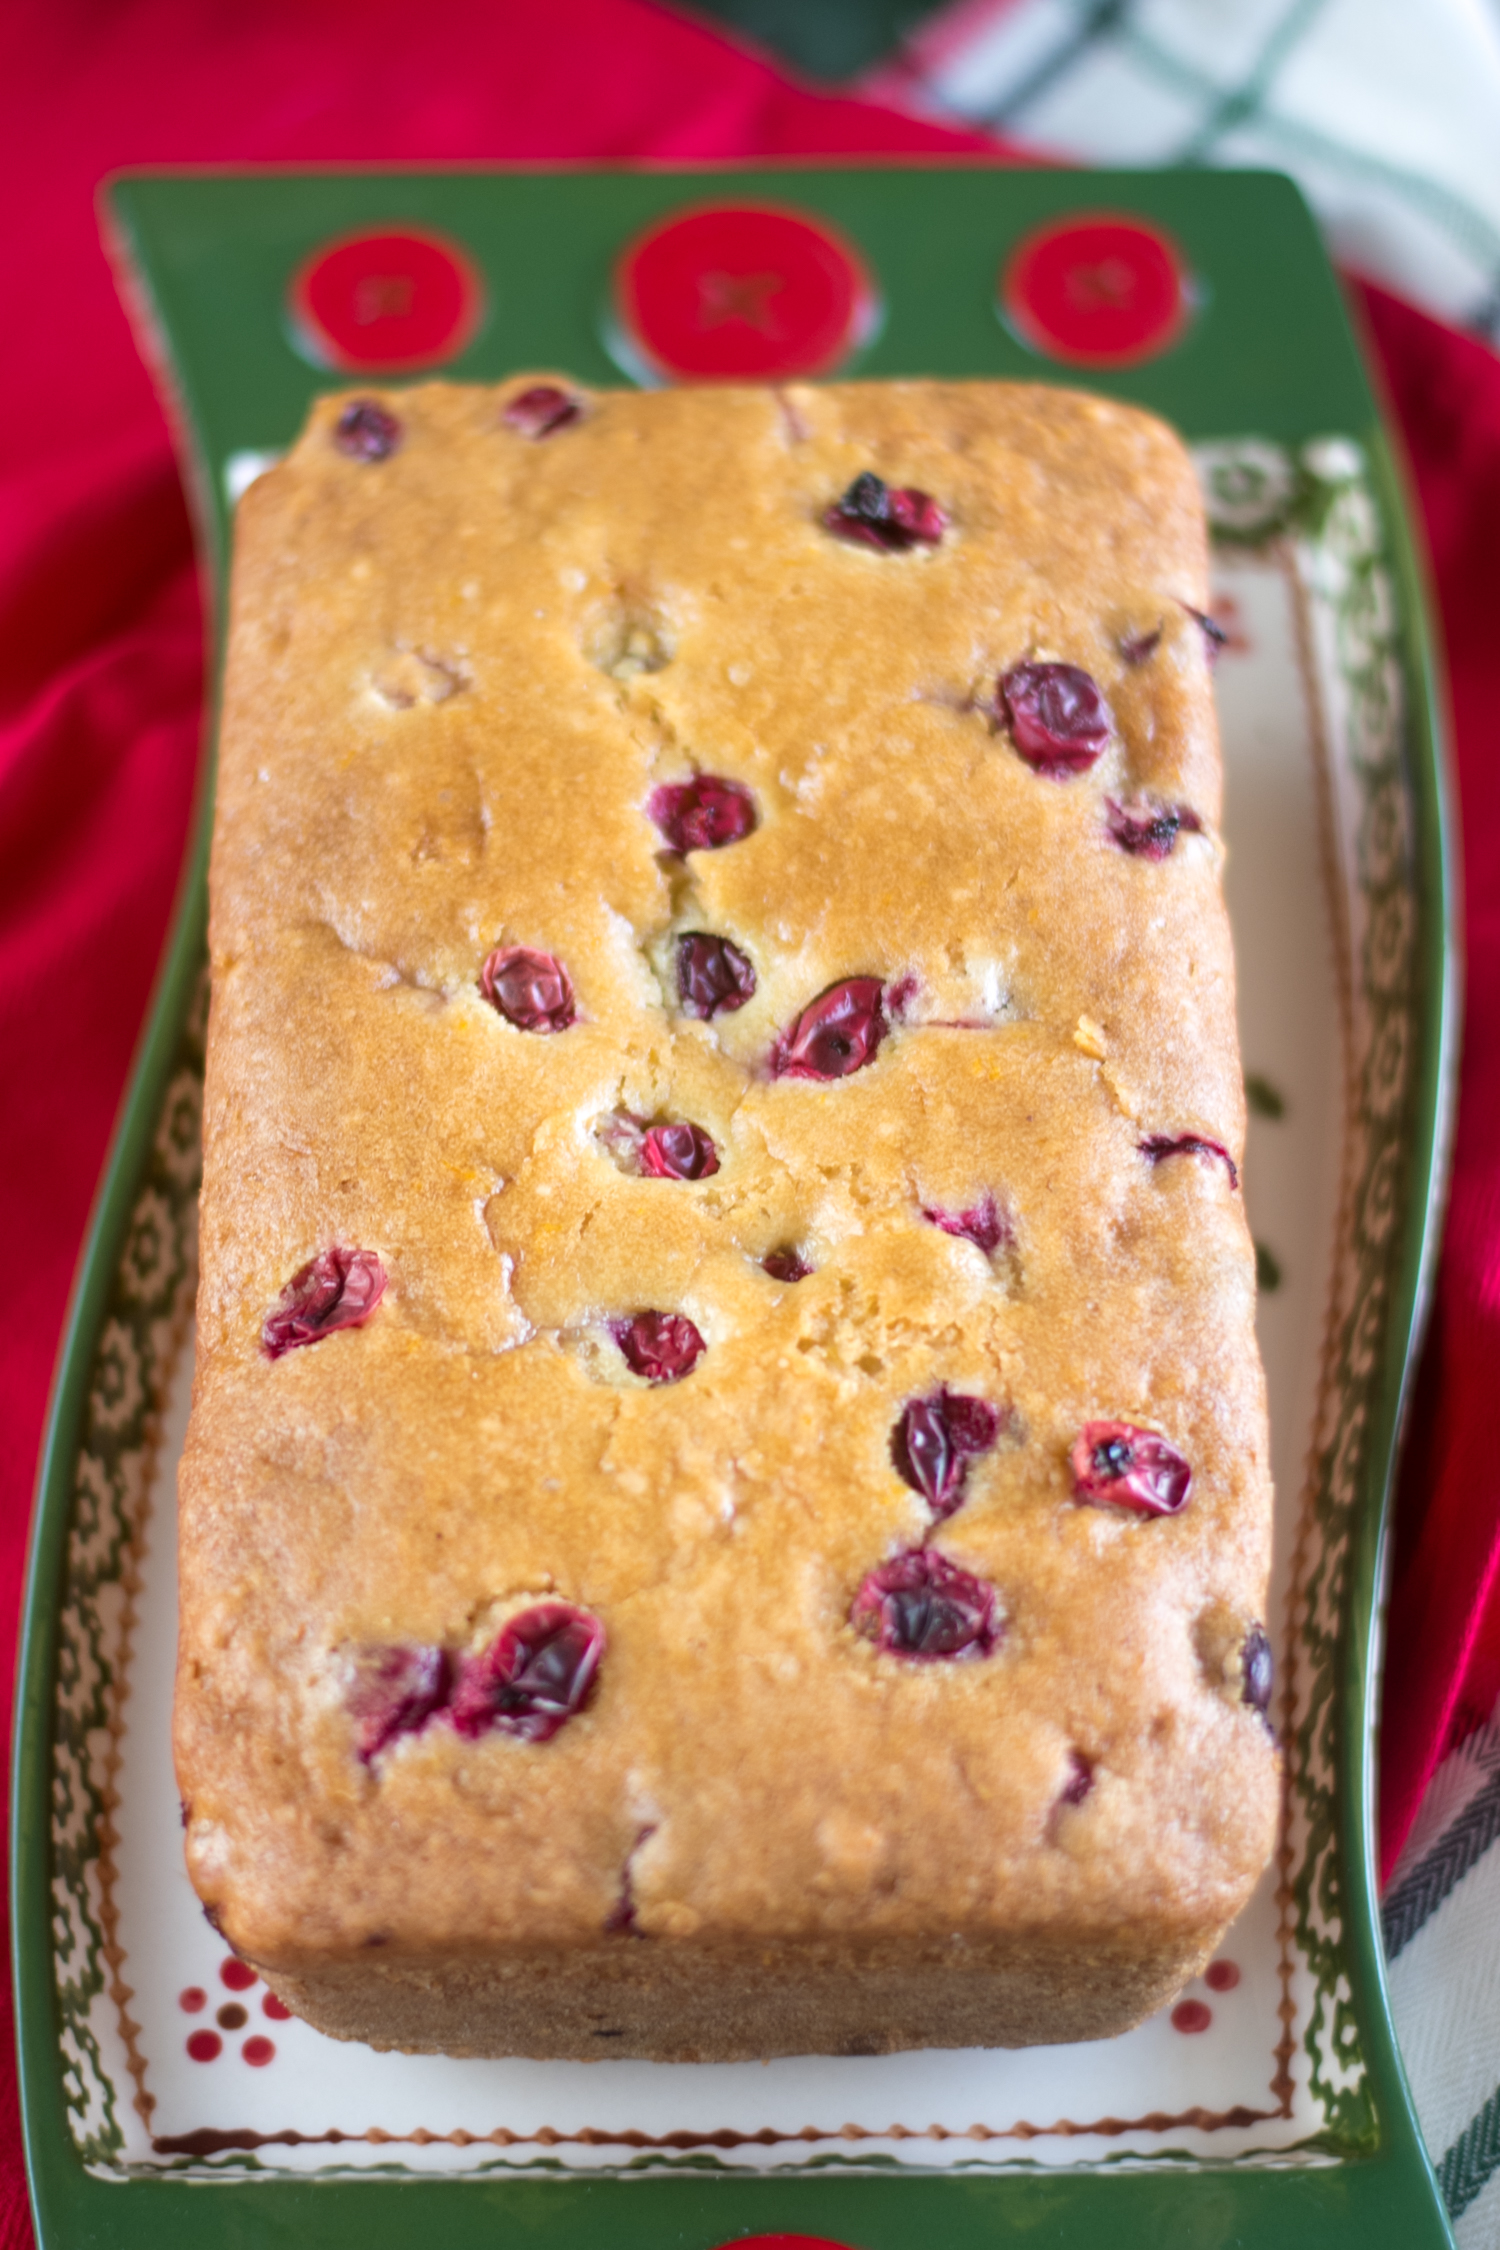 This Vegan Cranberry Orange Pound Cake is moist, flavorful, and will soon become a favorite to bake during the holidays and winter months.